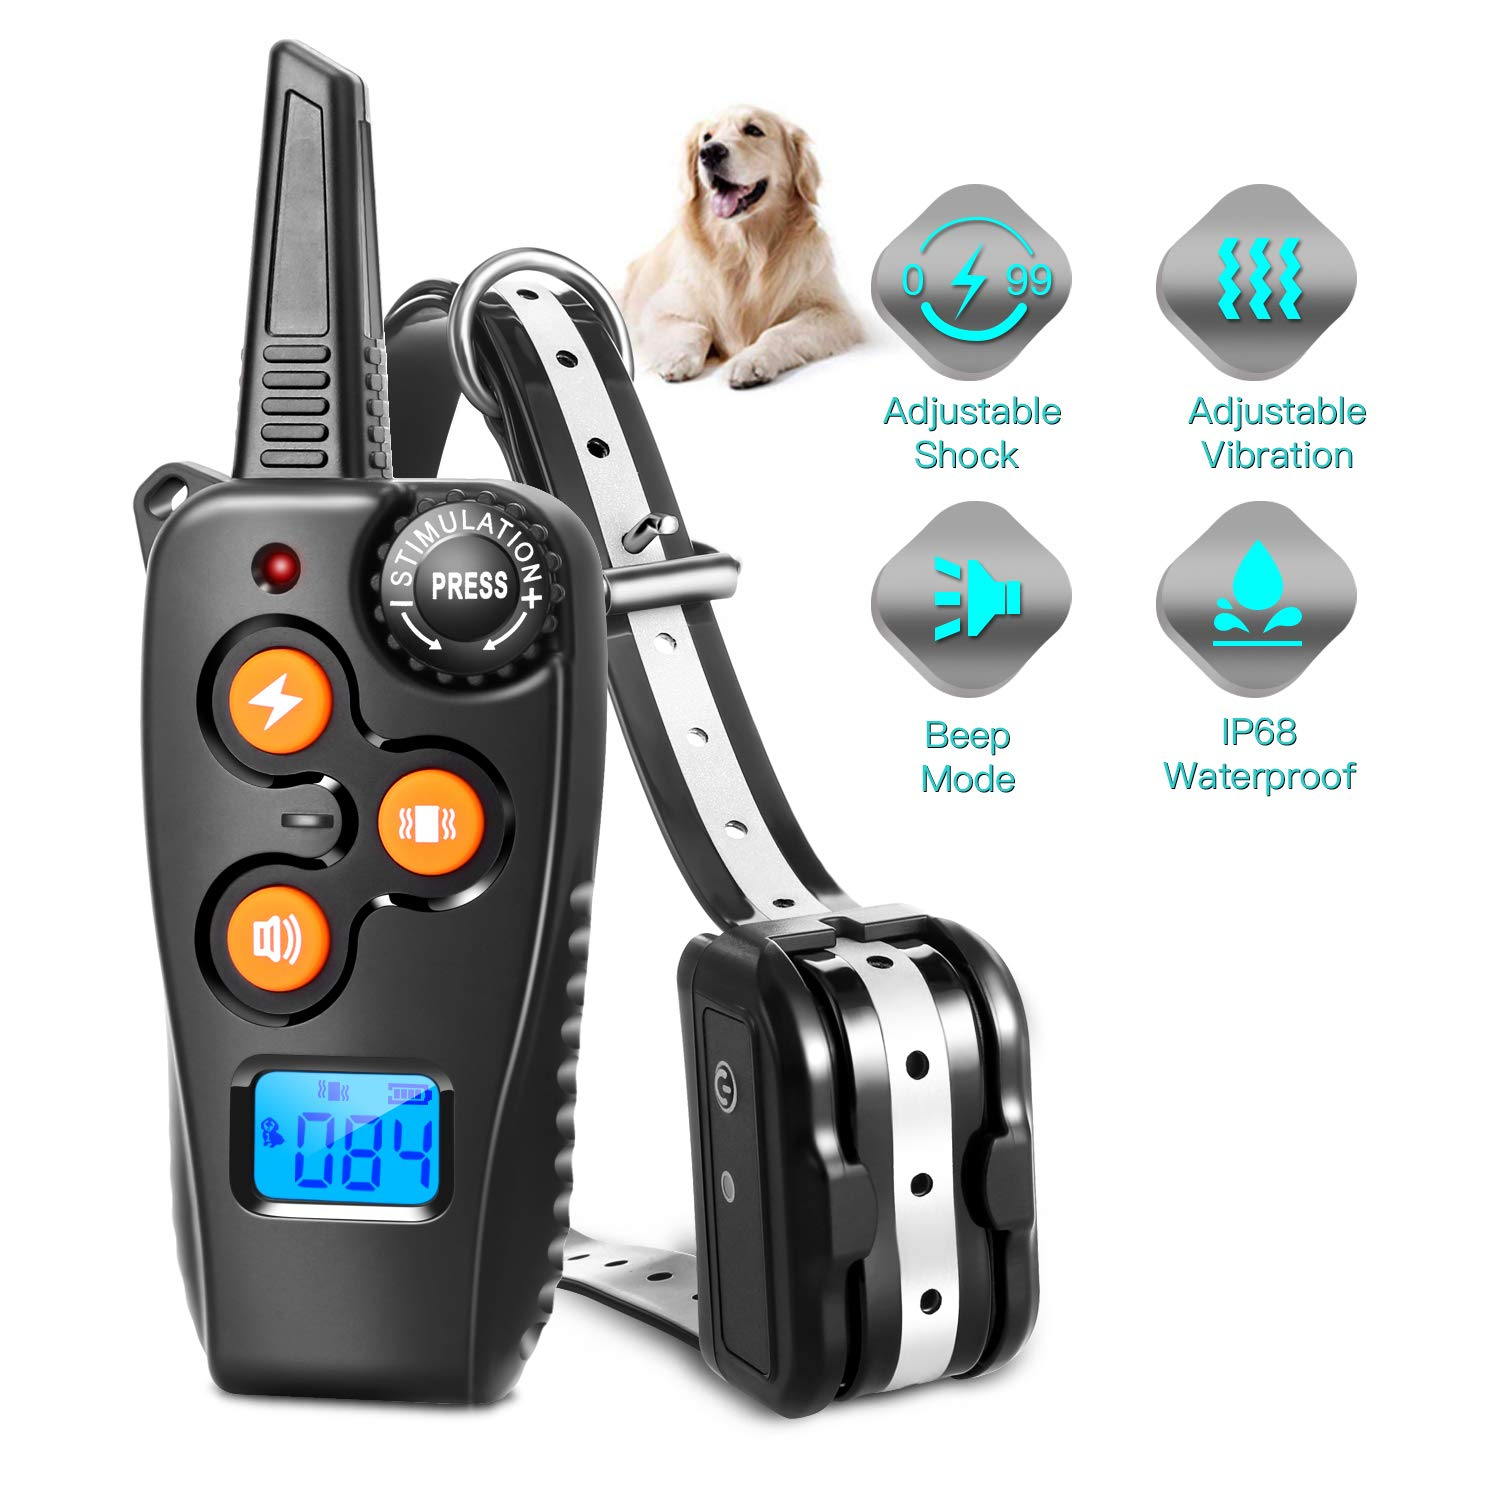 Zapuno Shock Collar for Dogs,1800ft/IP68 Waterproof Reflective Collar Dog Training Collar Shock Collar with Remote Beep/Vibrate/Shock Modes for Small Medium Large Dogs